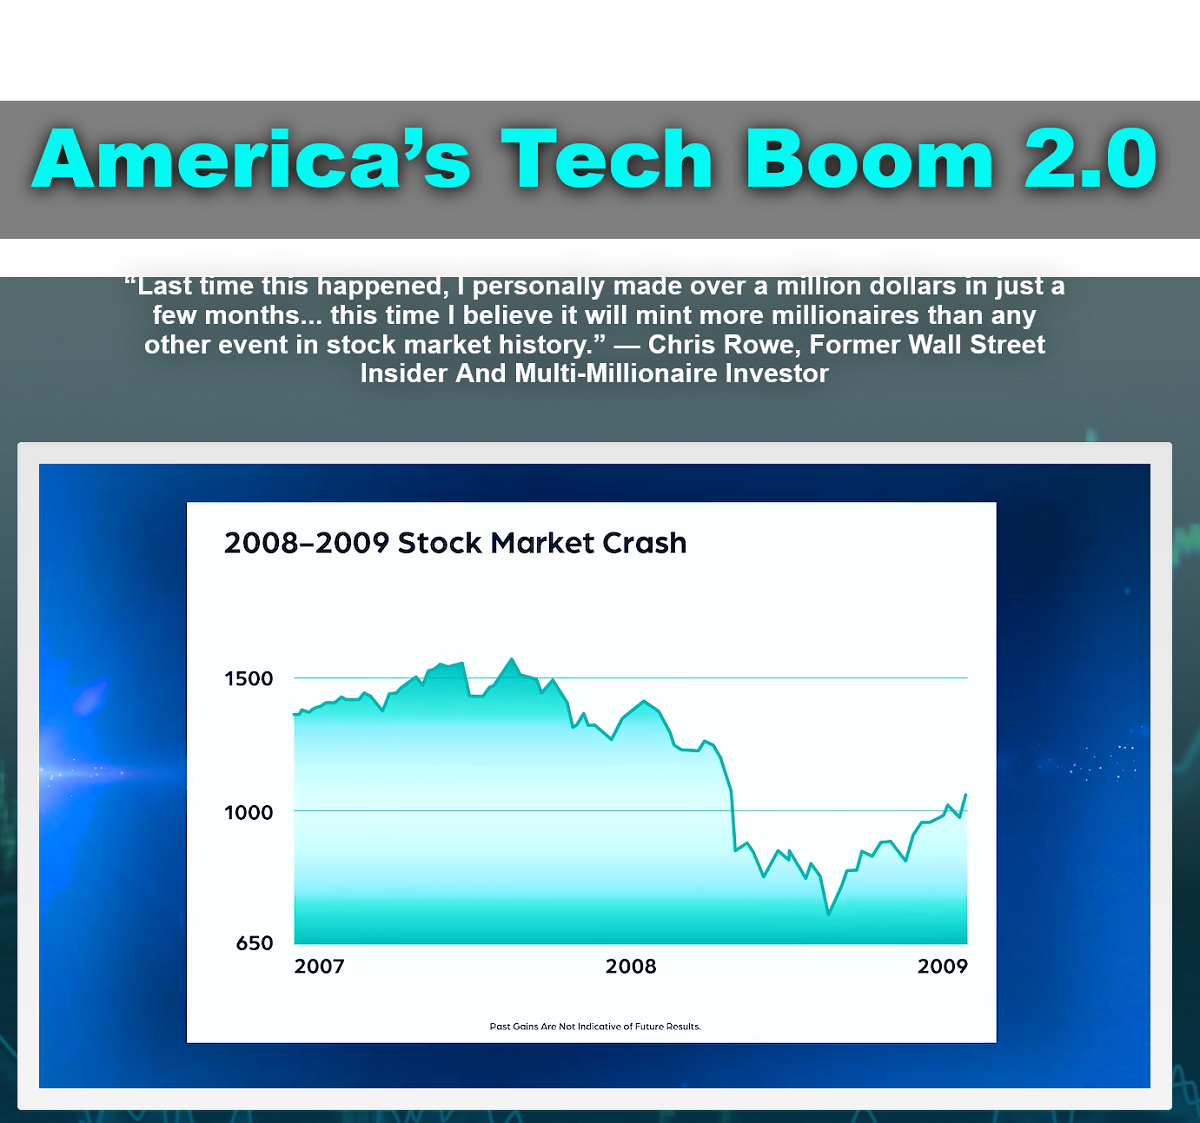 What Is America's Tech Boom 2.0: Chris Rowe's Sector Focus Review